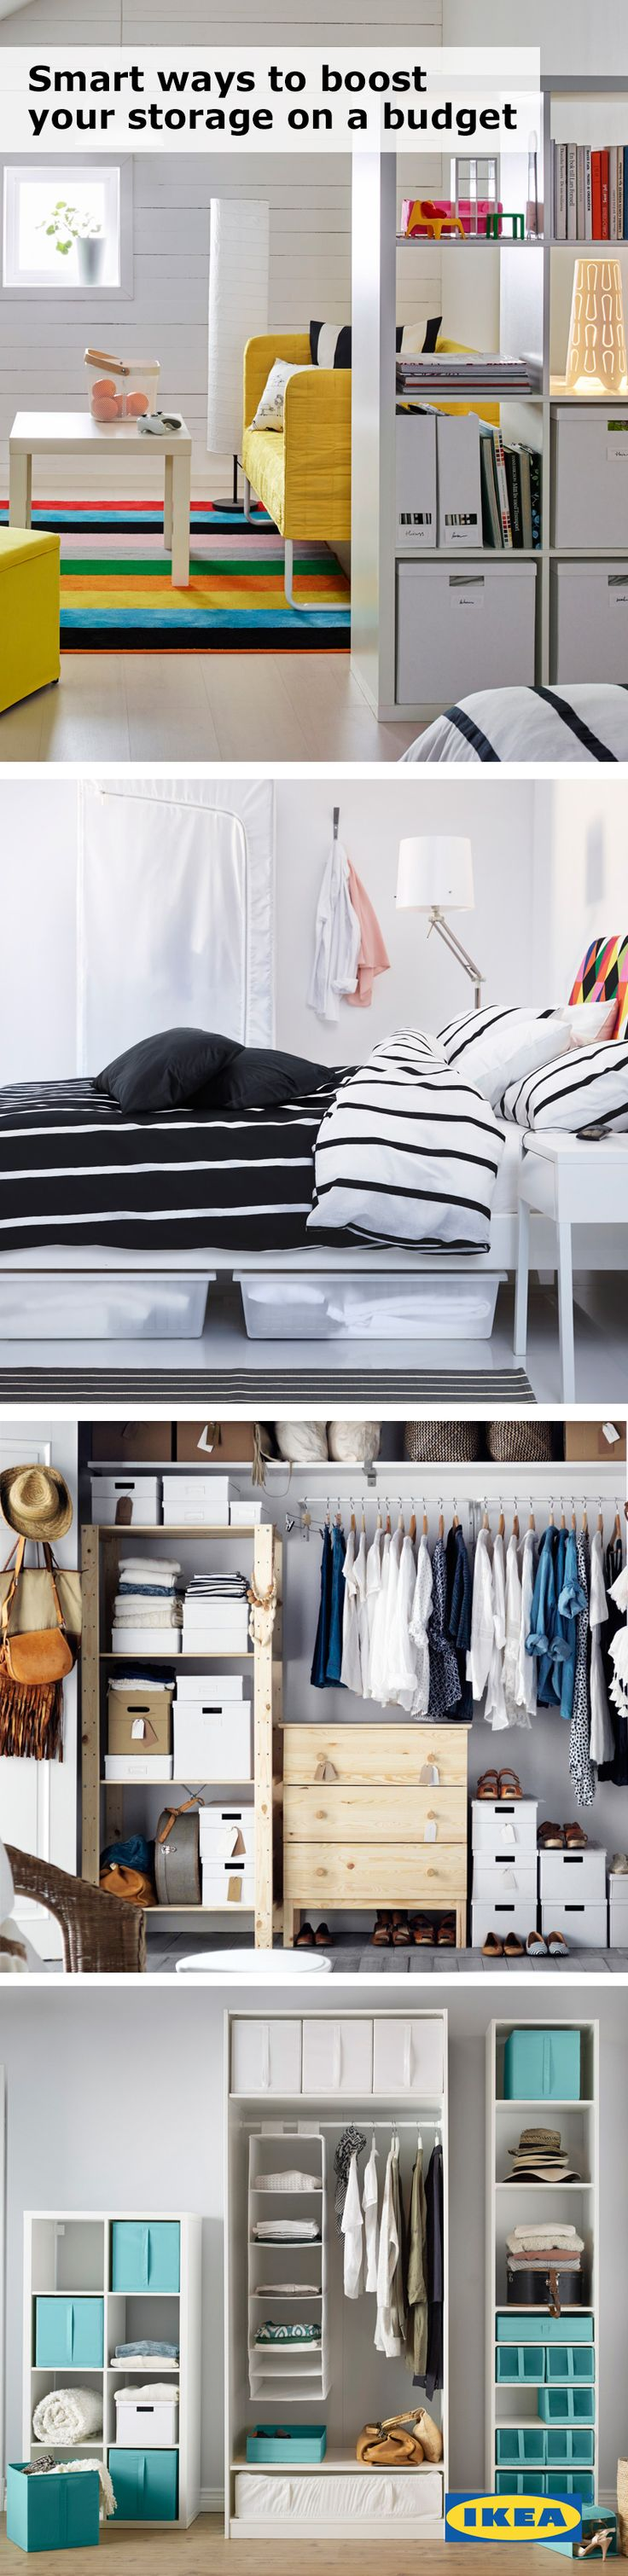 Storage can help to keep even the smallest of spaces organized! A college room or dorm is the perfect place for IKEA underbed storage, storage boxes and plenty of shelving. #IKEAStudyInStyle